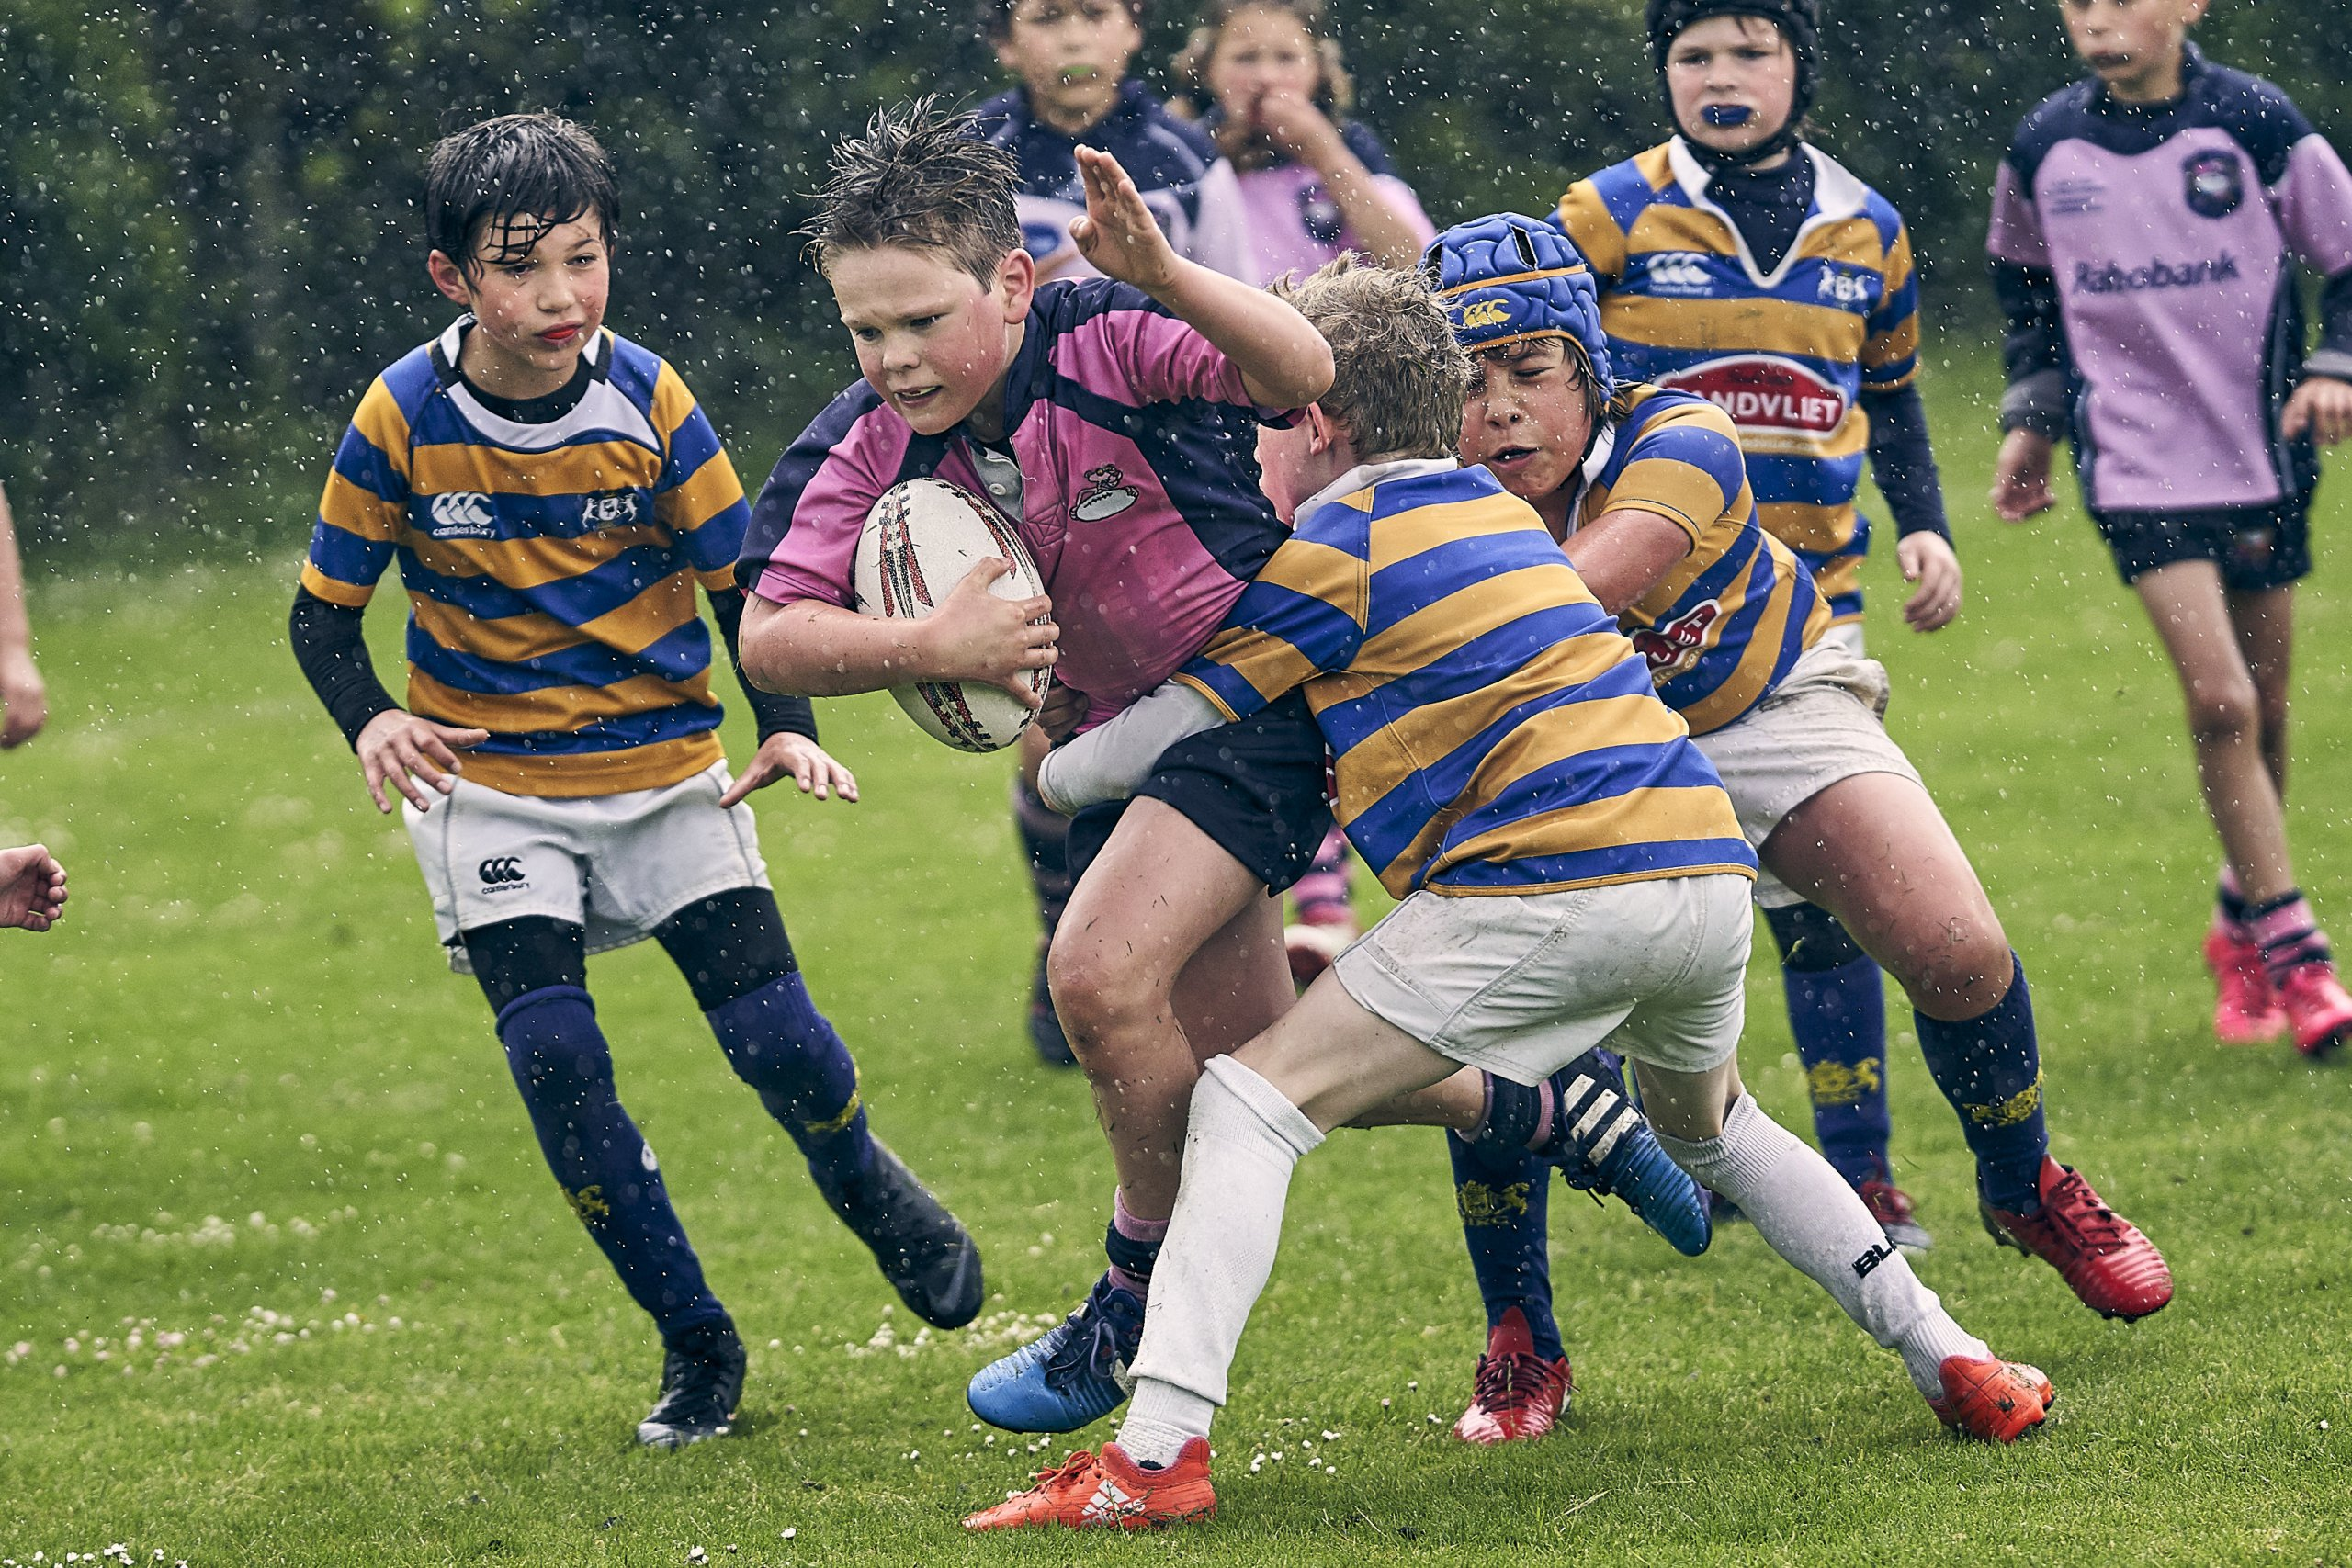 domcity rugby toernooi